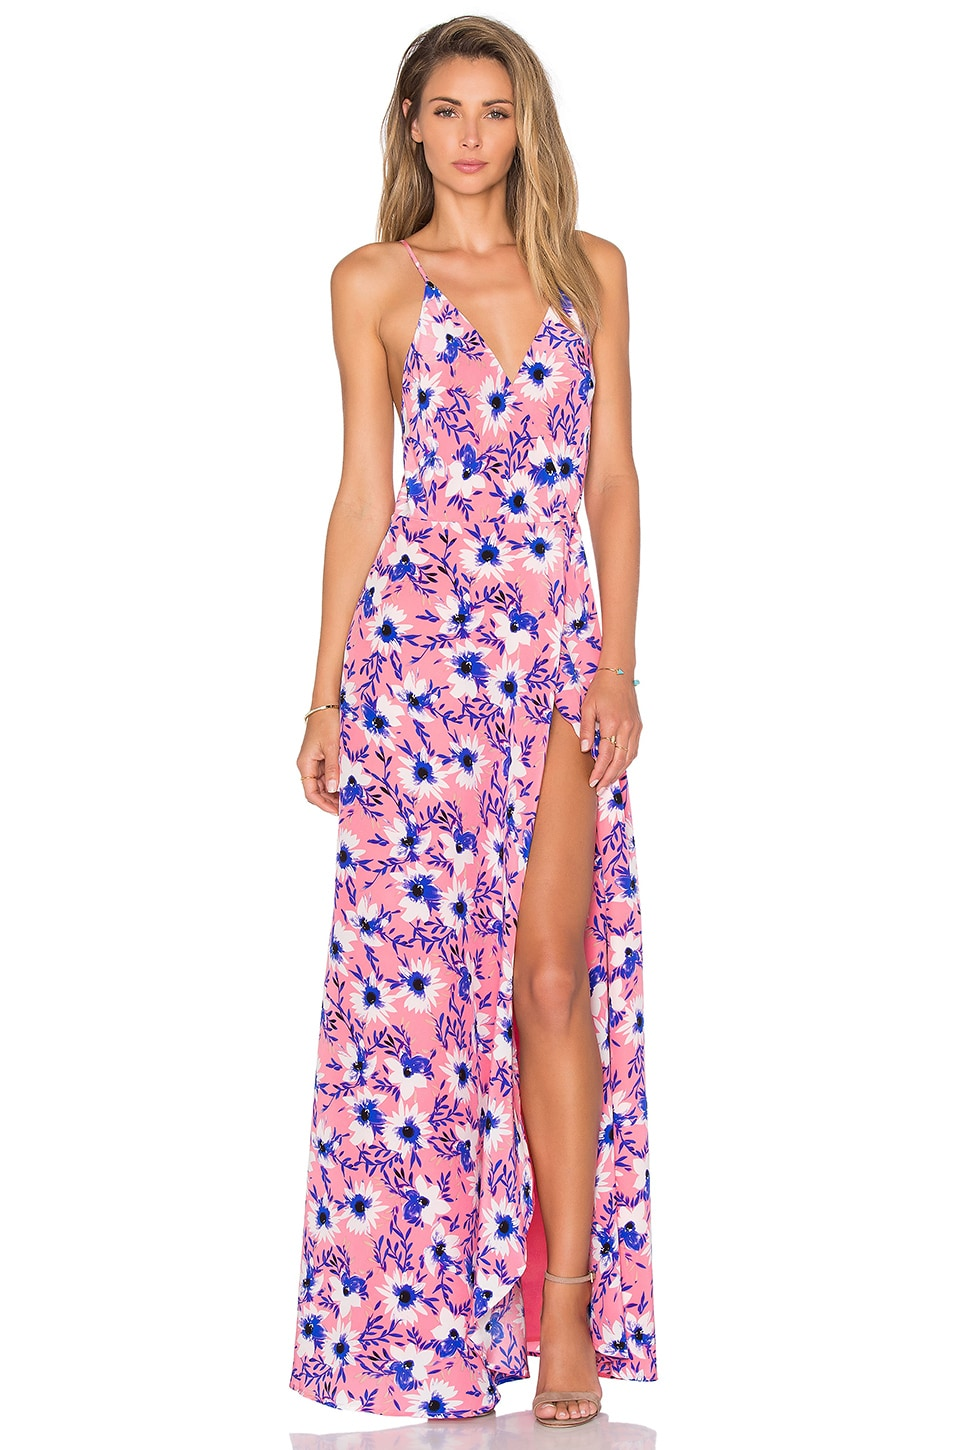 Yumi Kim Rush Hour Maxi Dress in Sway Away Bouquet